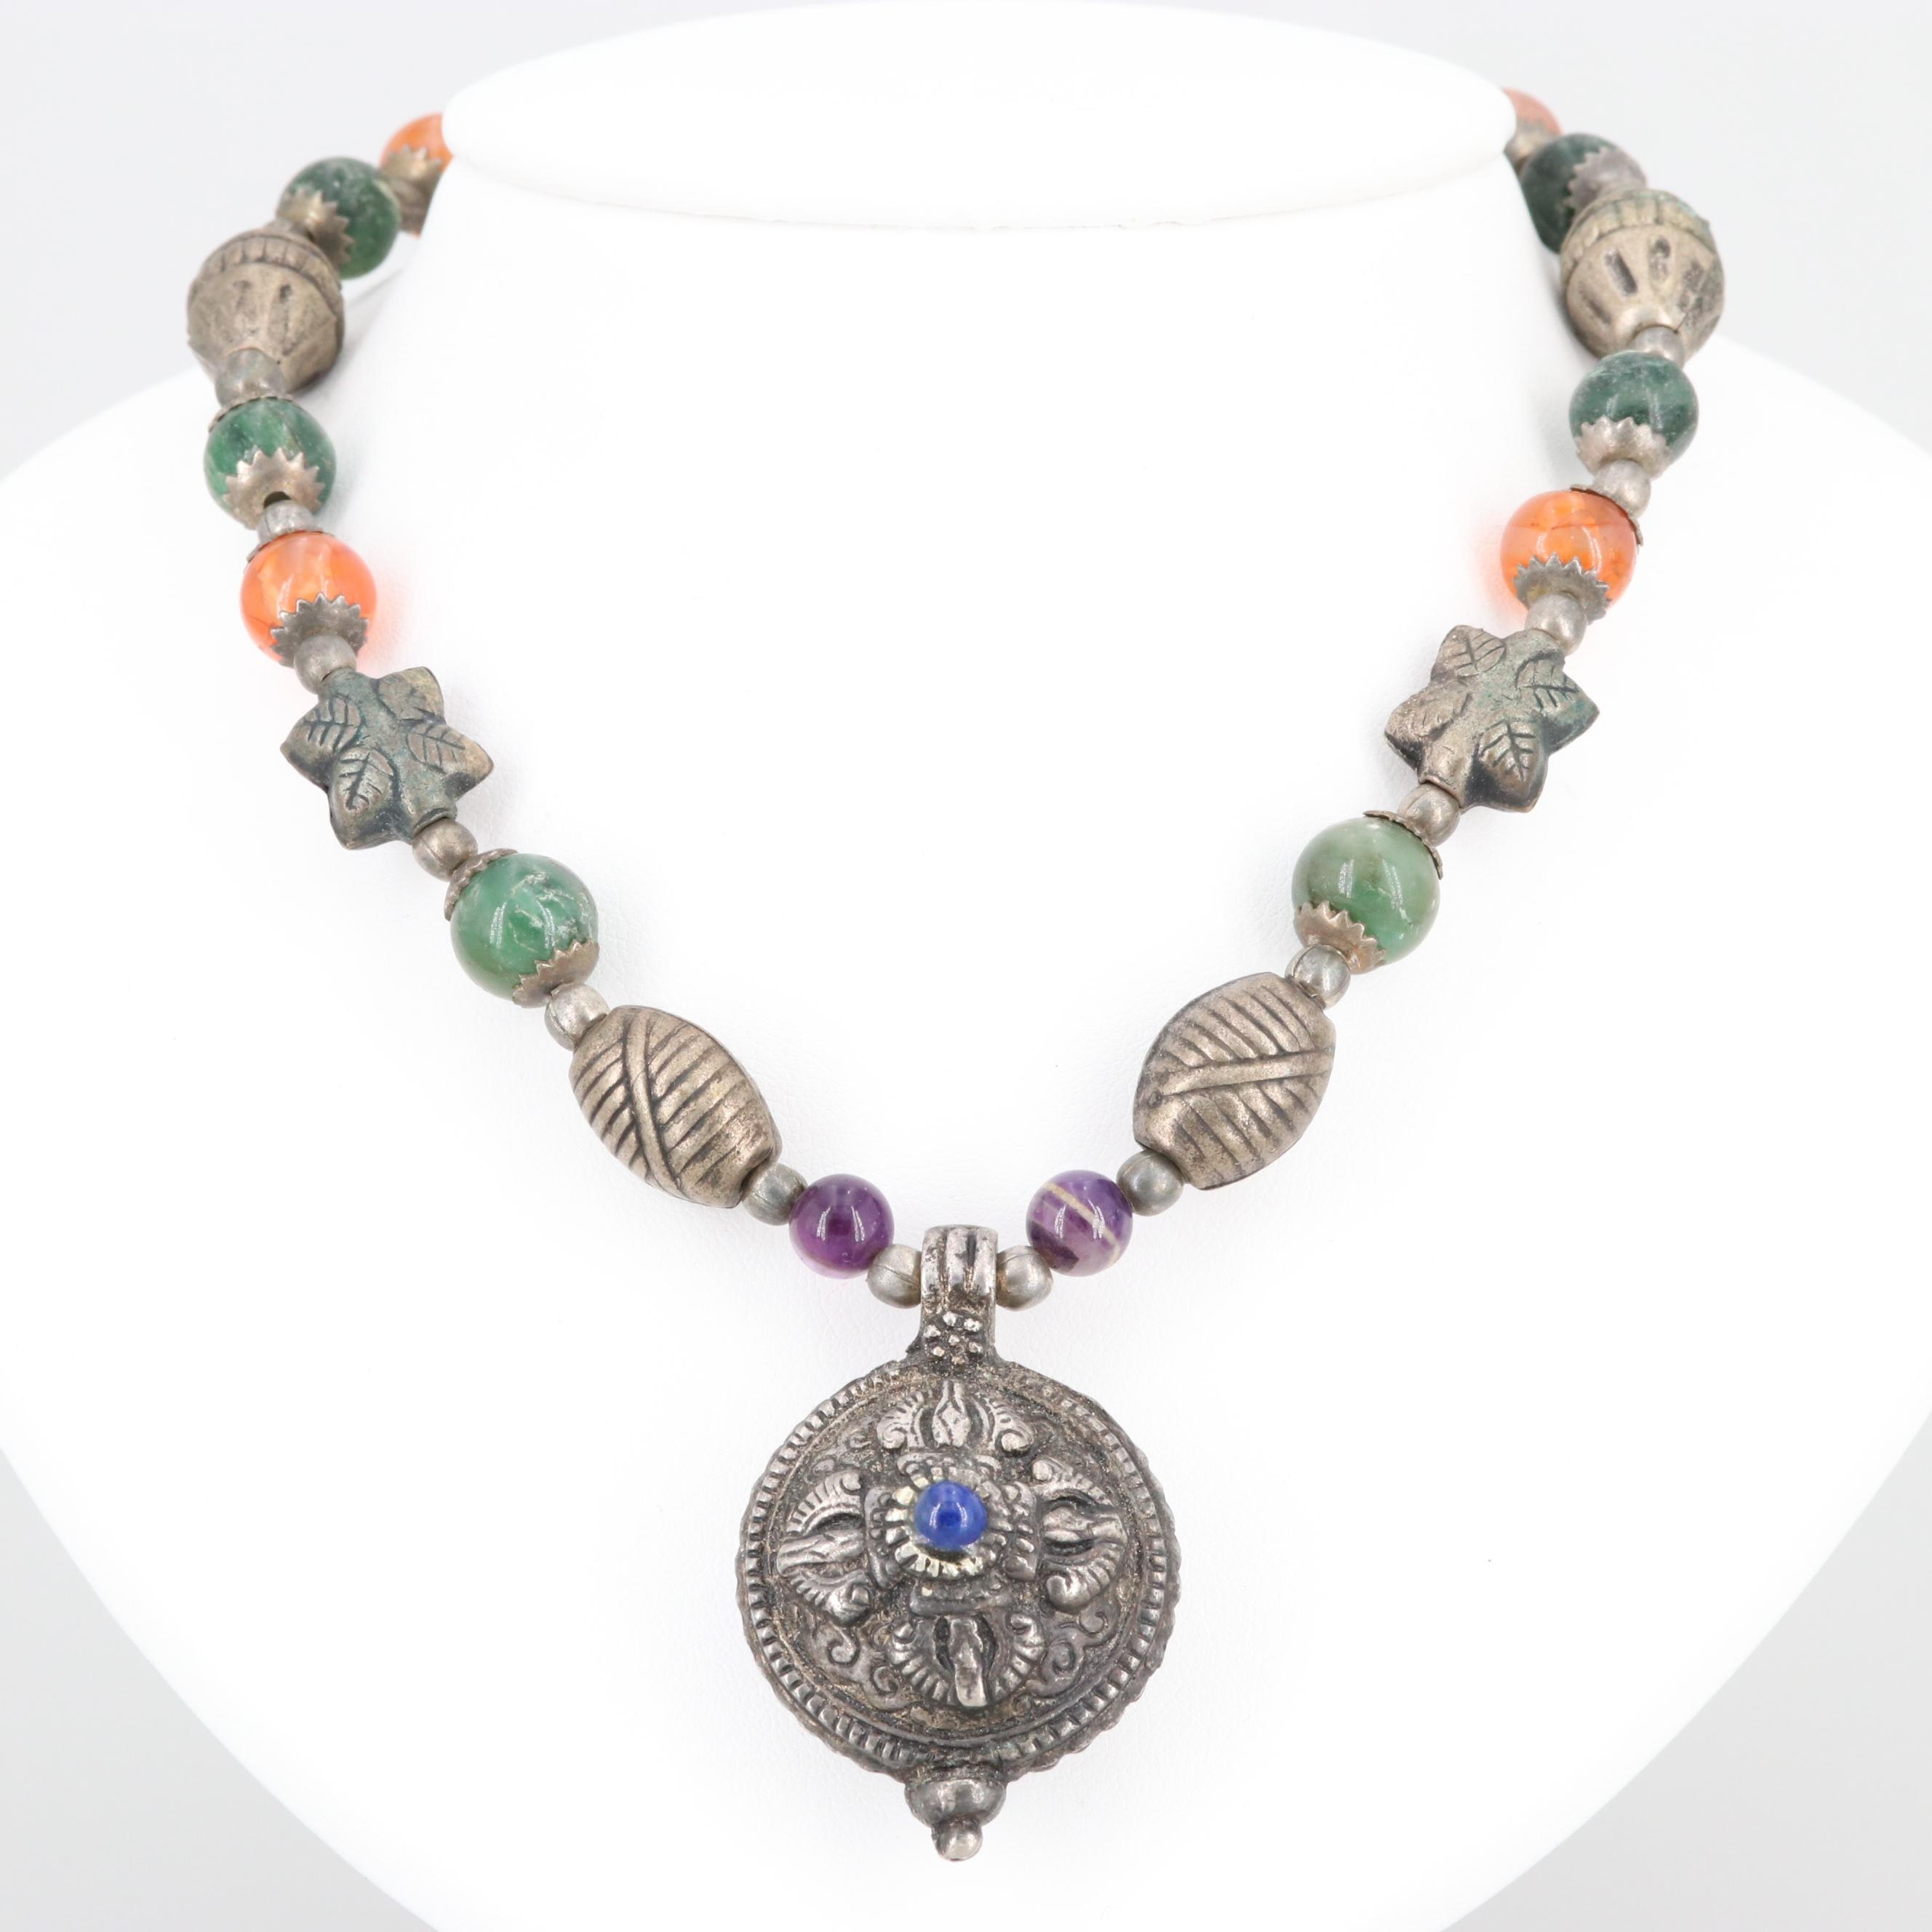 Silver Tone Agate, Aventurine and Amethyst Necklace